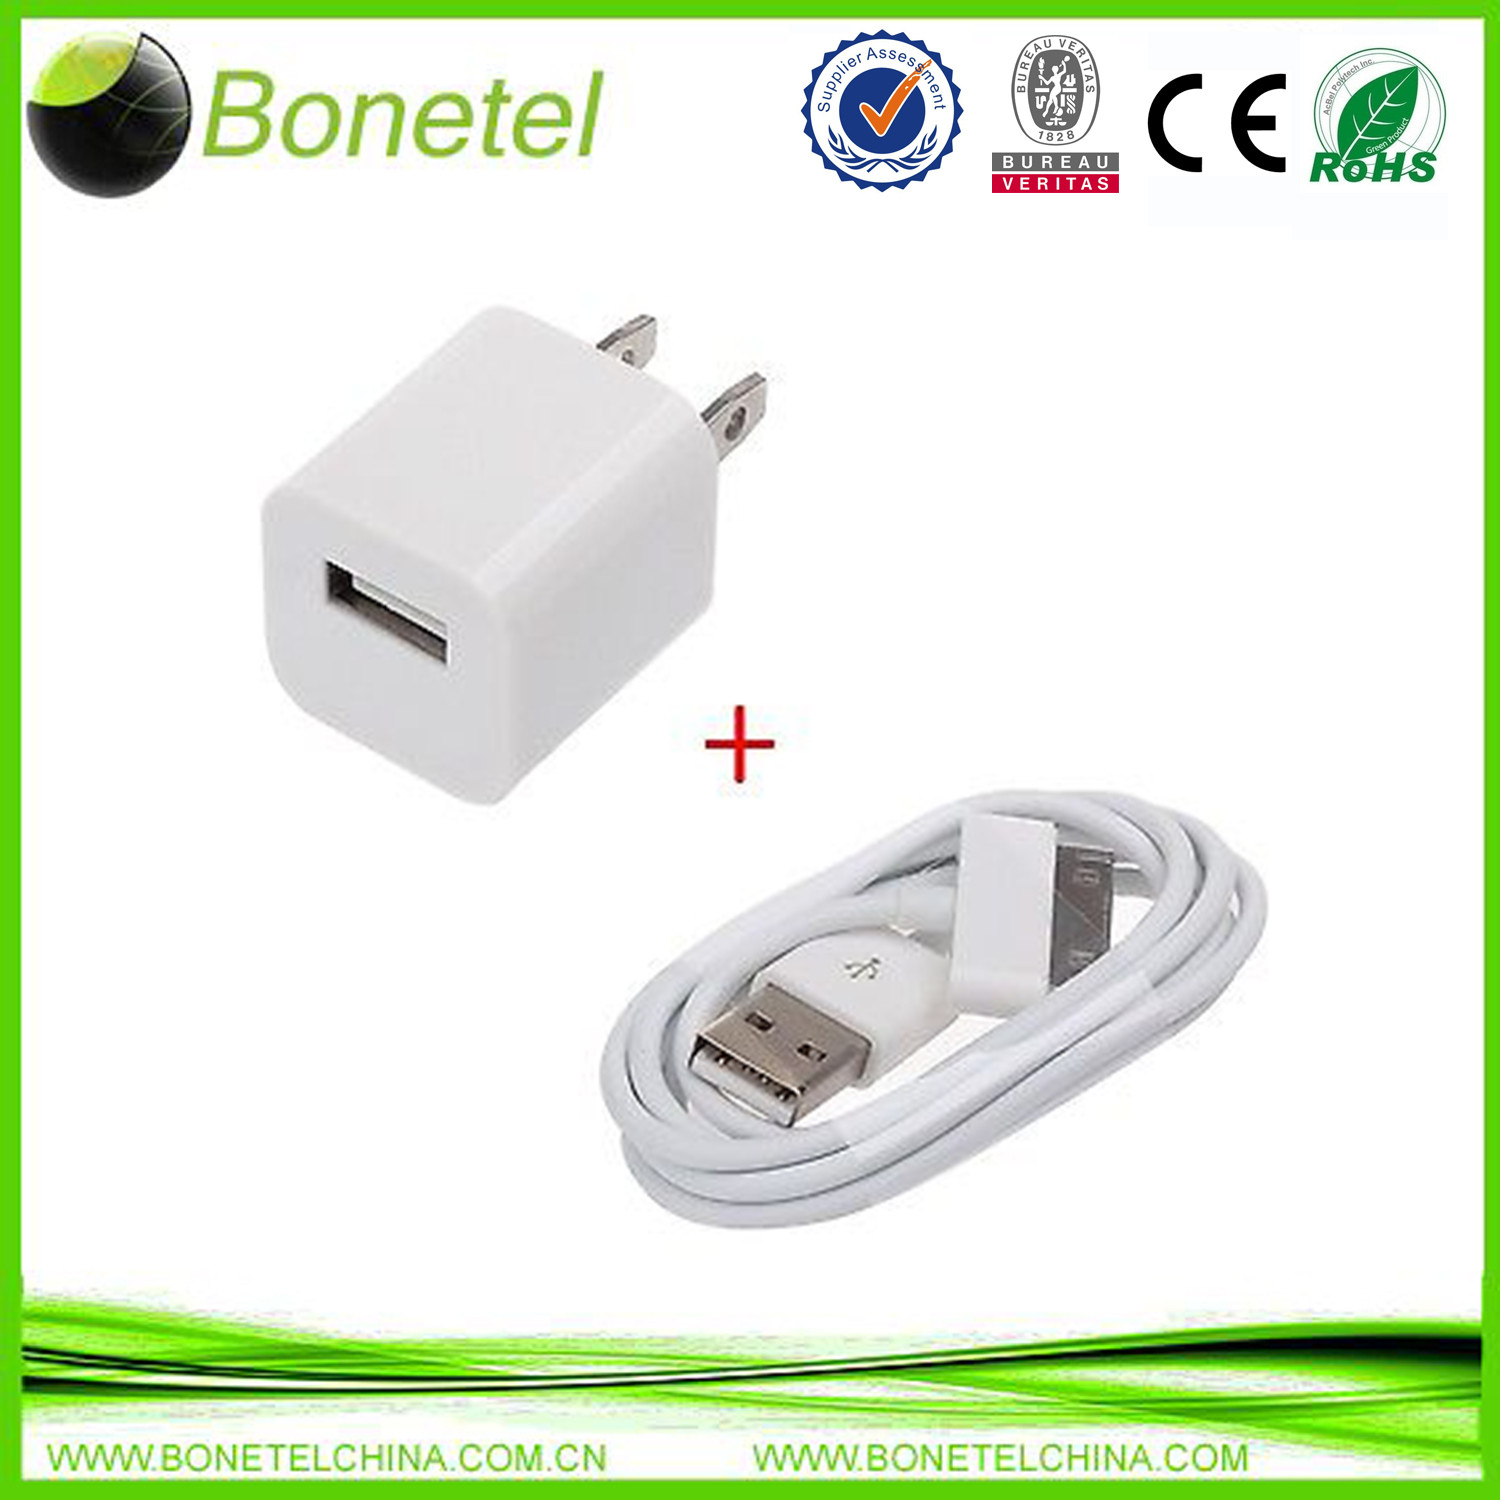 Charger Adapter+ USB Data Sync Cable for iPhone4/4S 3G iPod Touch